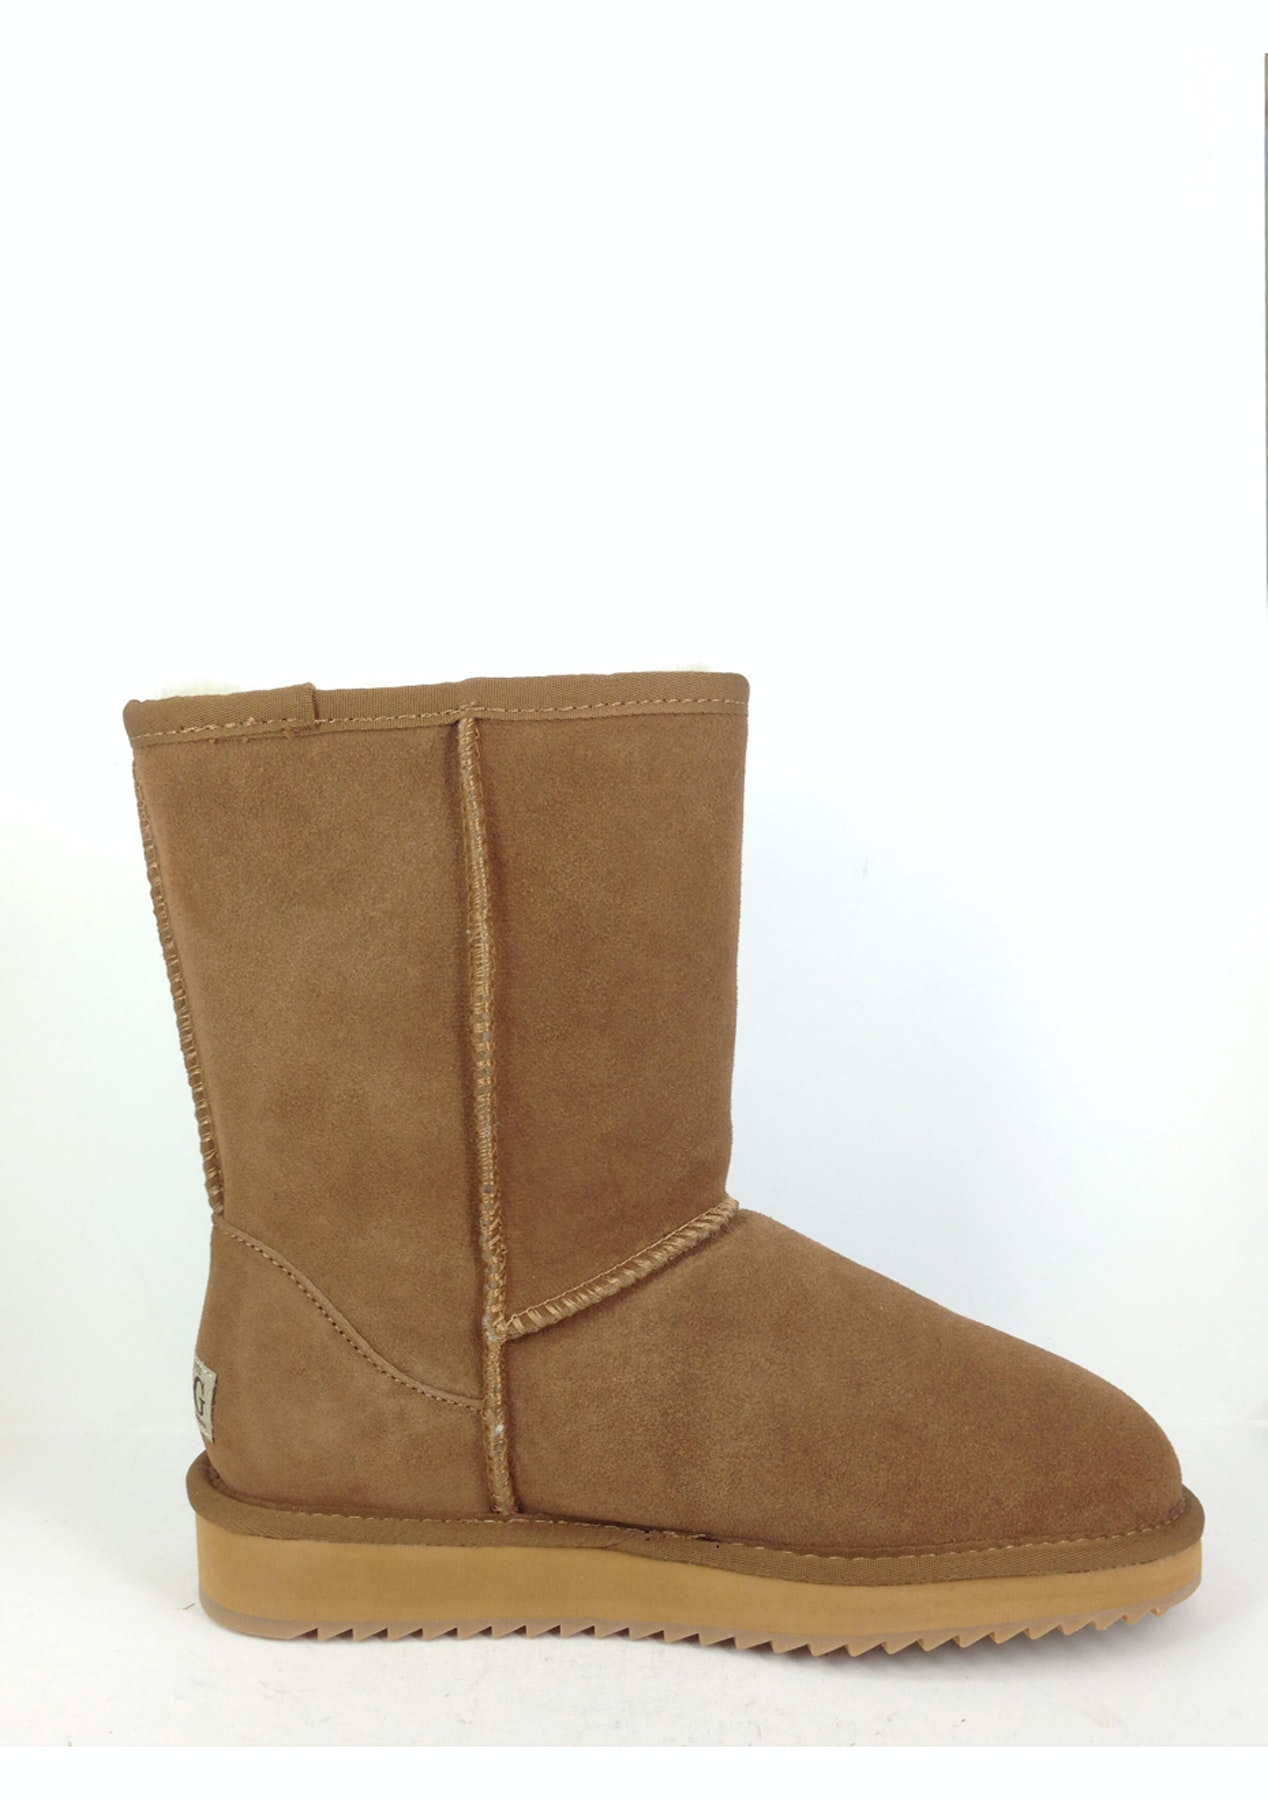 87c6b2445d2 OzNatives - Classic Short Water-Resistant Suede Leather - Chestnut